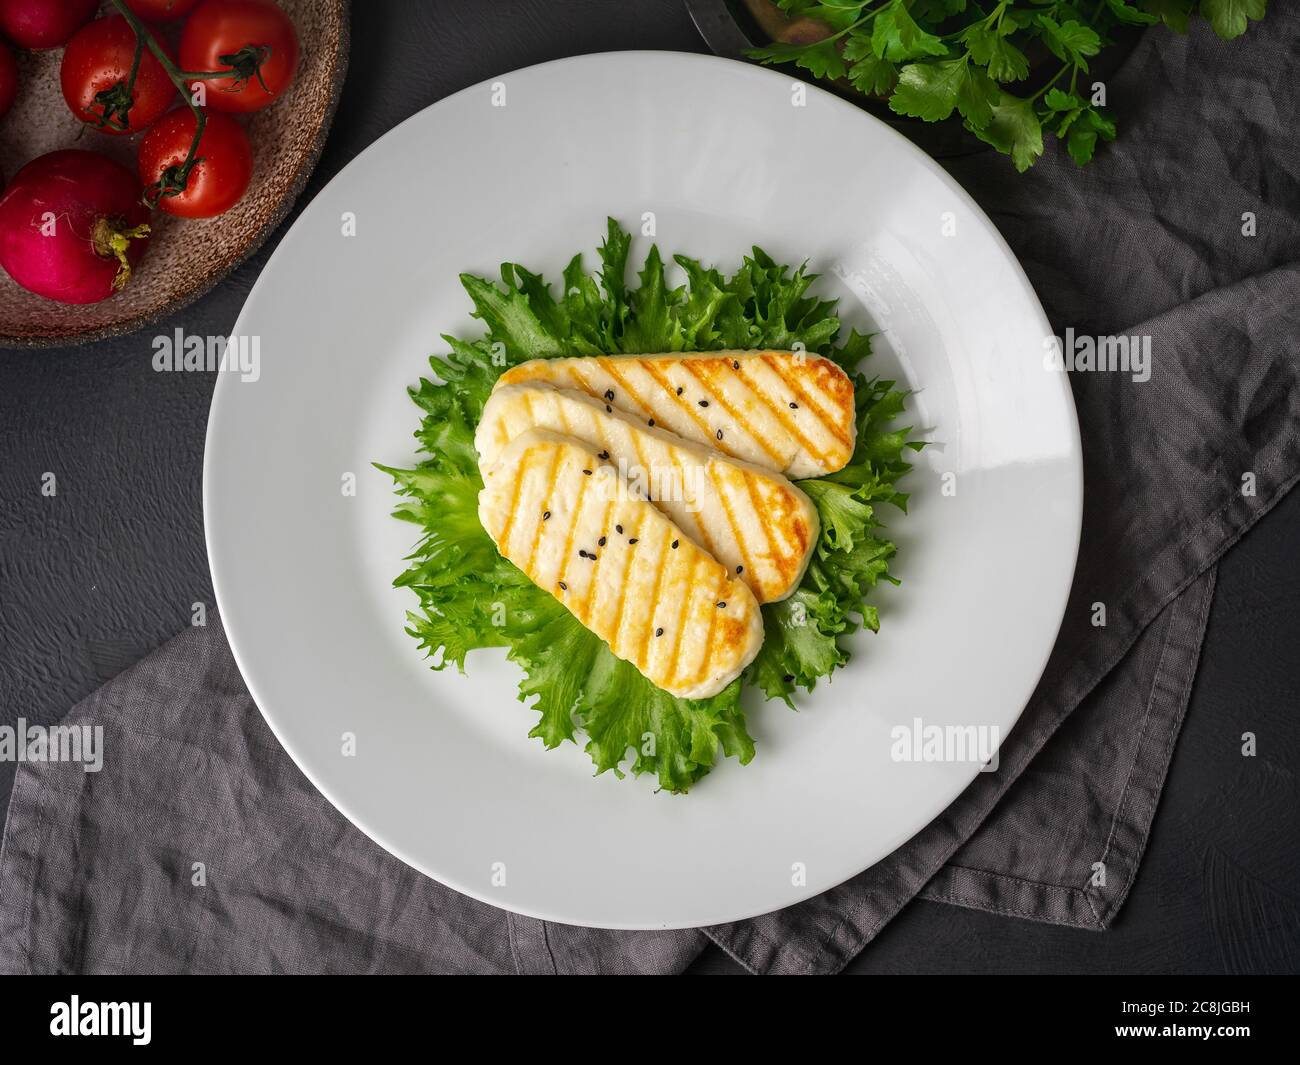 Grilled Halloumi Fried Cheese With Lettuce Salad Balanced Diet White Plate On Dark Background Top View Stock Photo Alamy